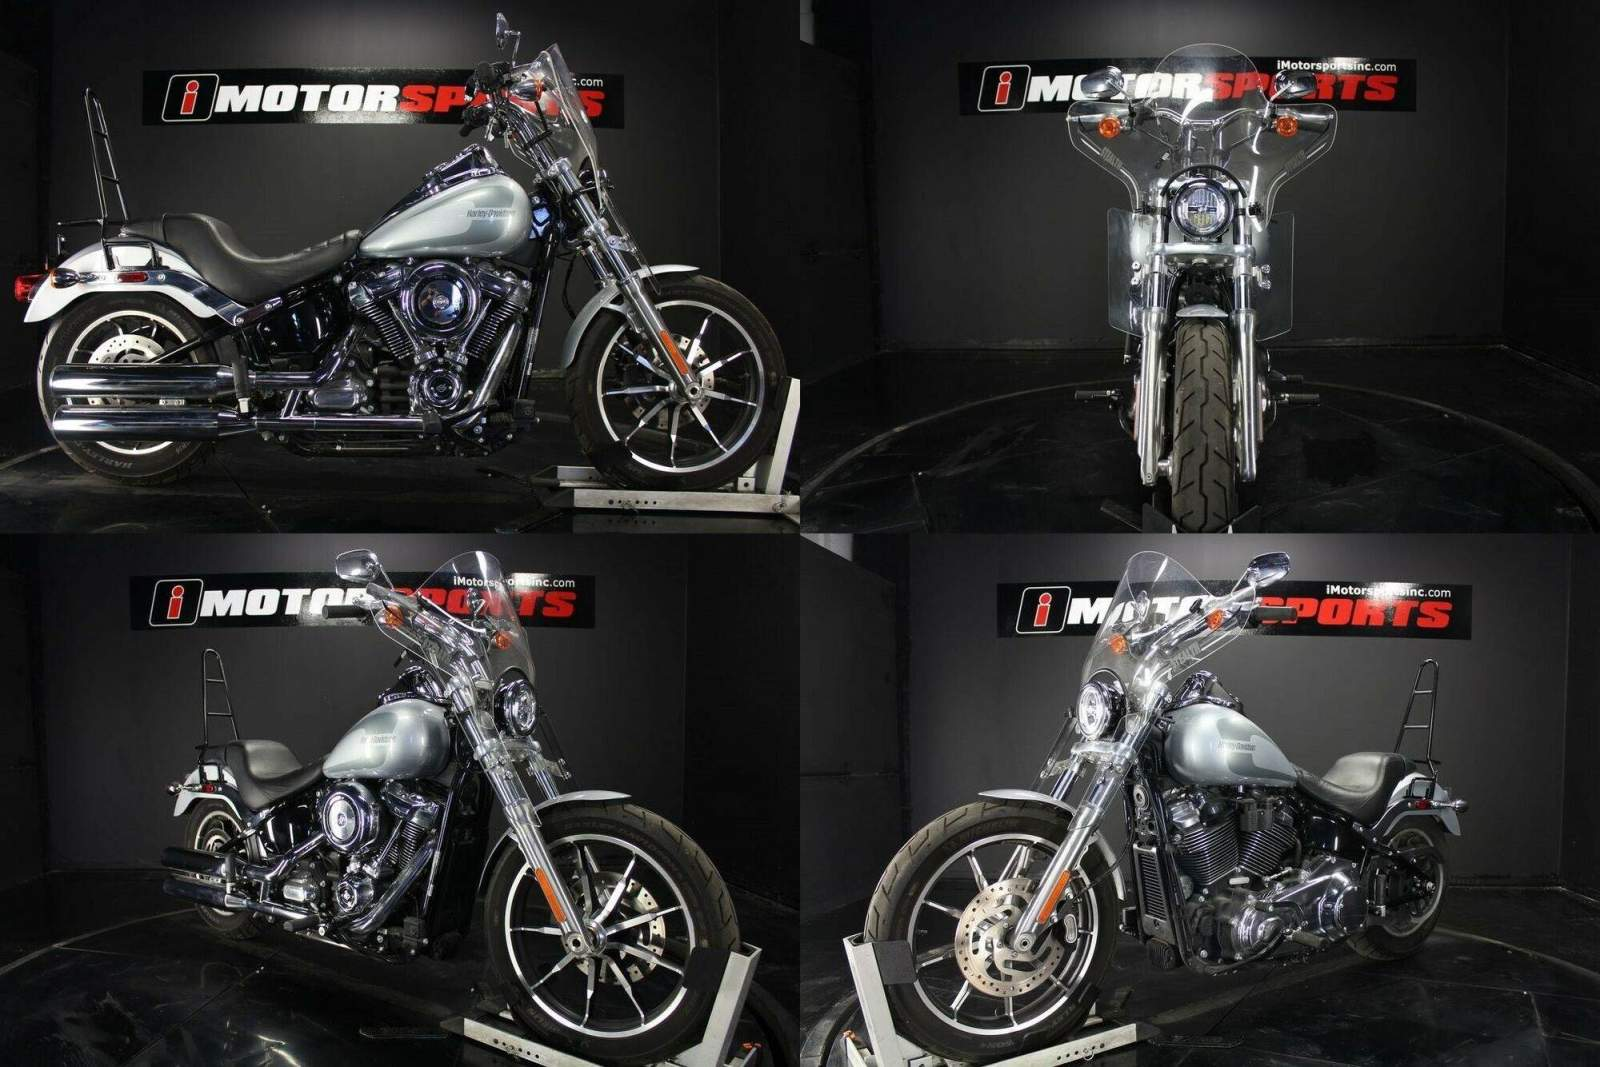 2019 Harley-Davidson FXLR - Softail Low Rider Gray used for sale